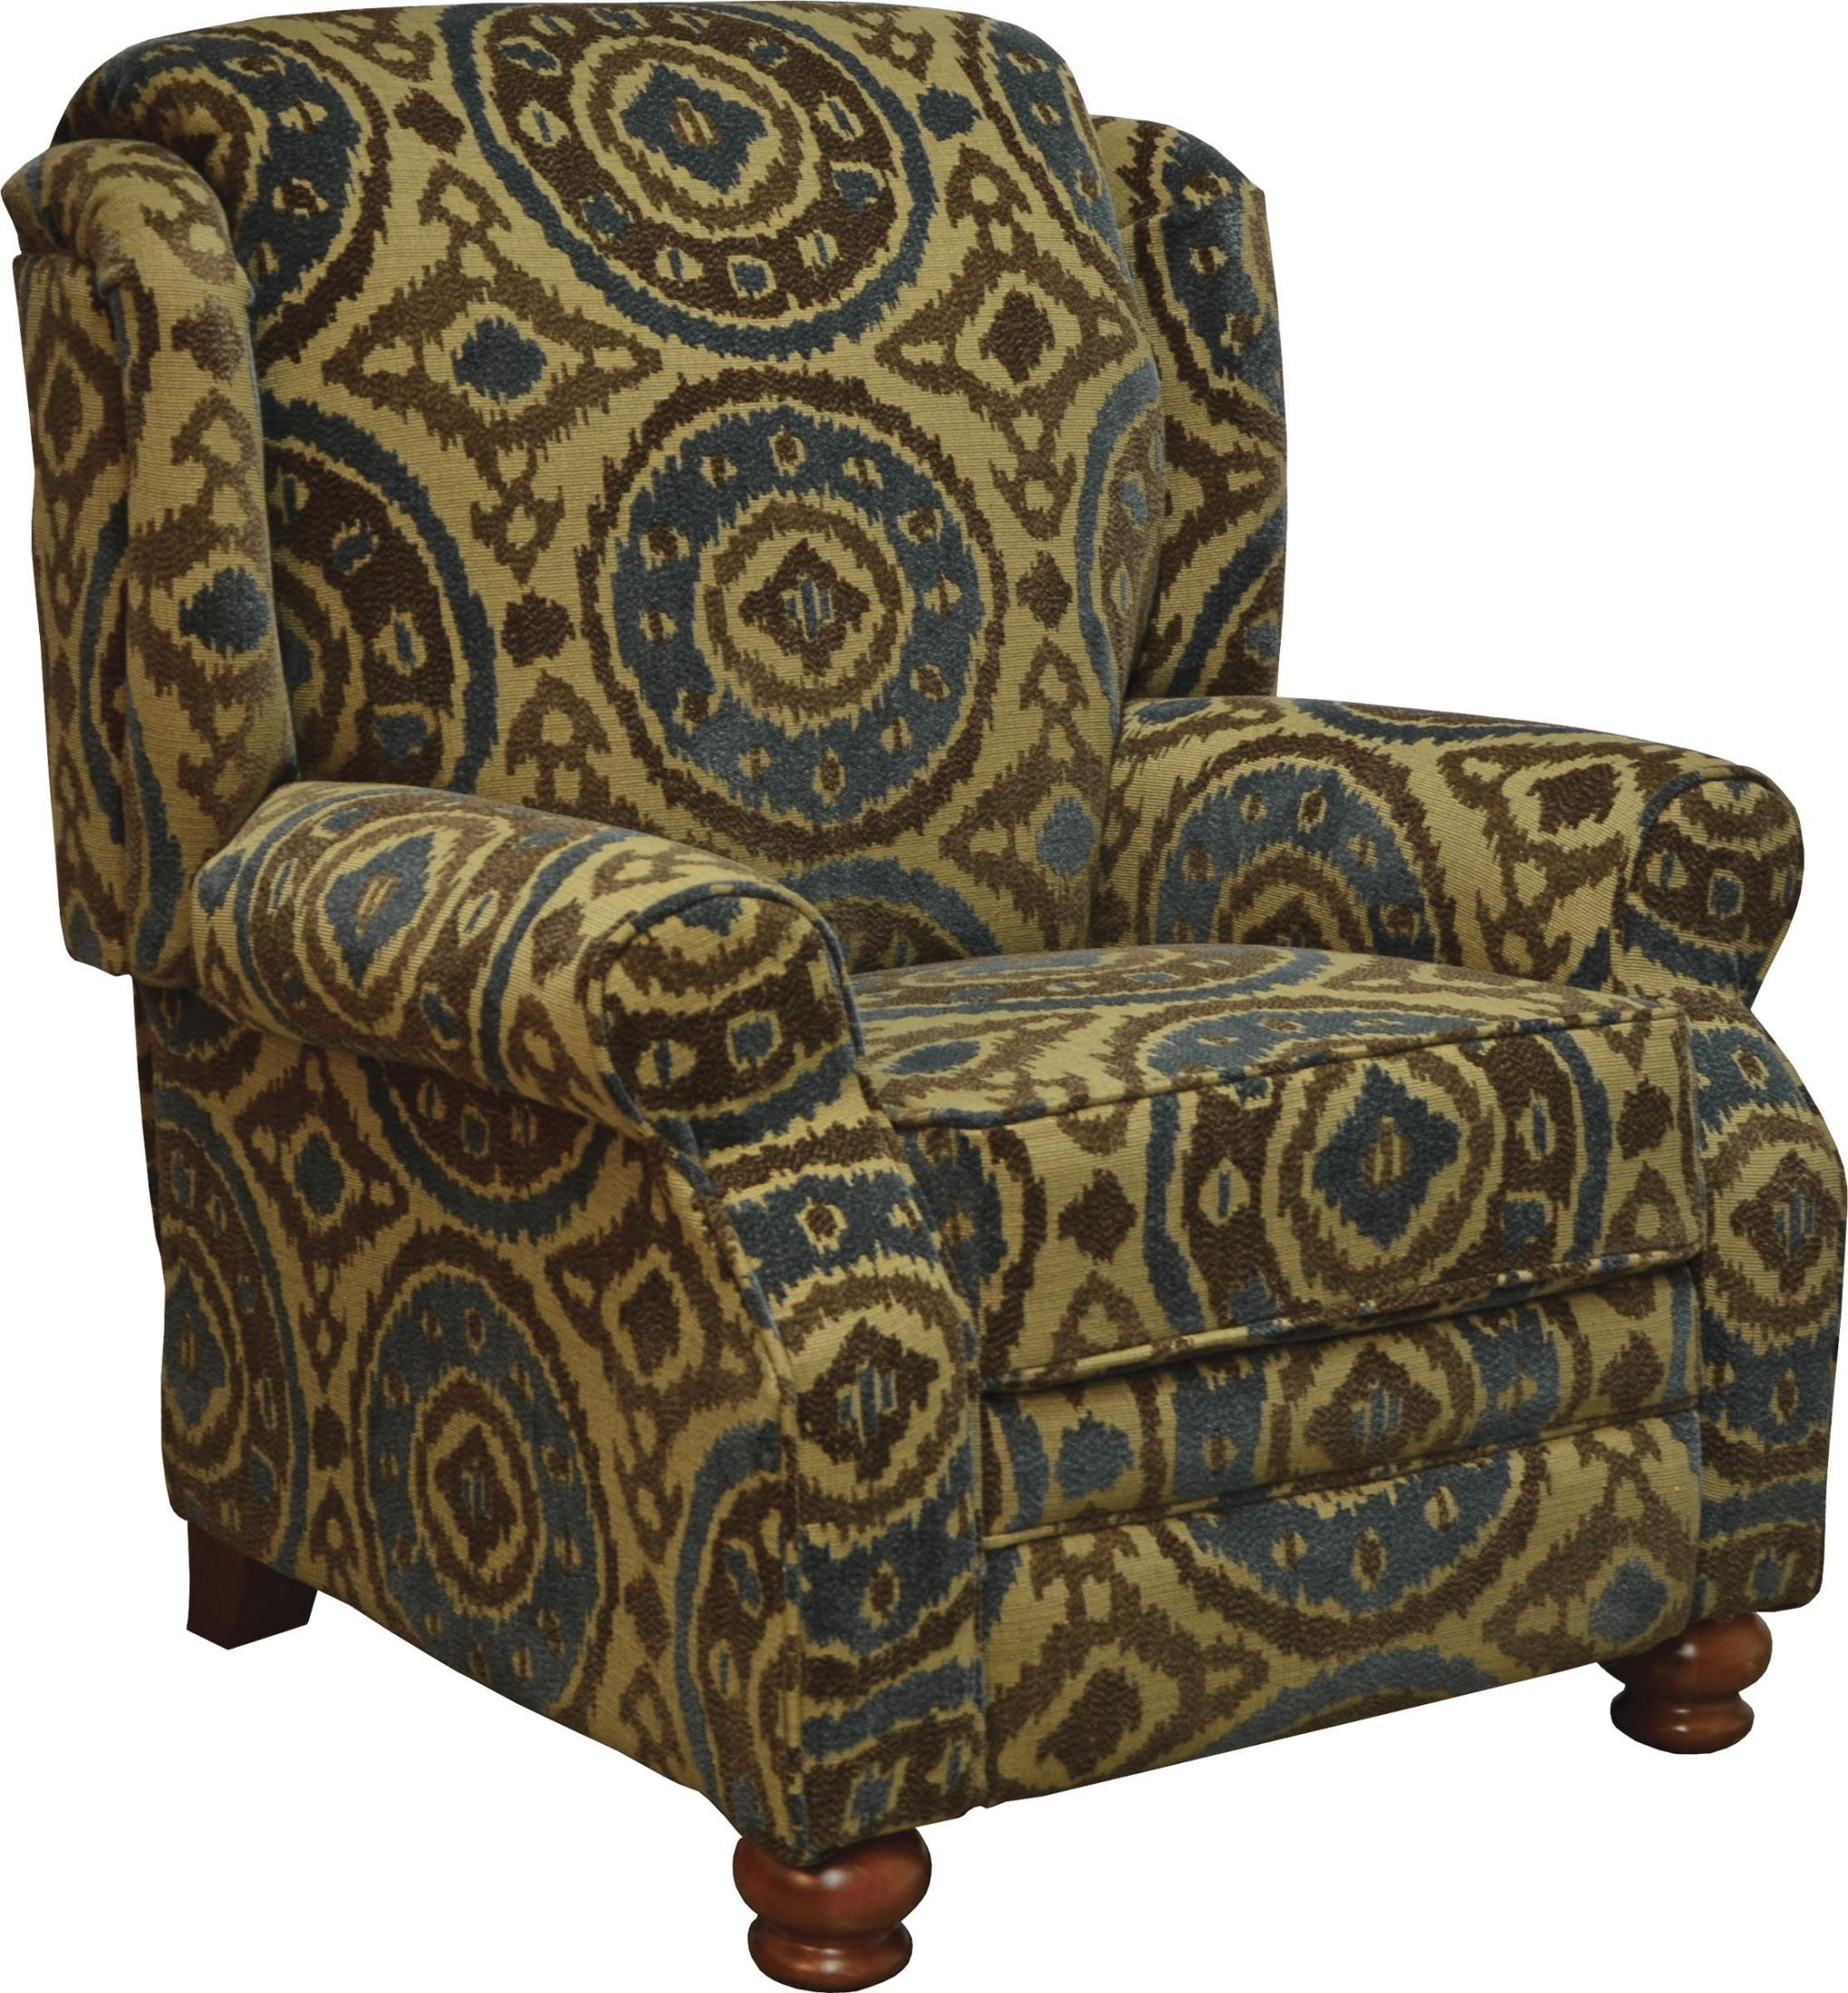 Belmont Peacock Reclining Chair From Jackson 434711000000